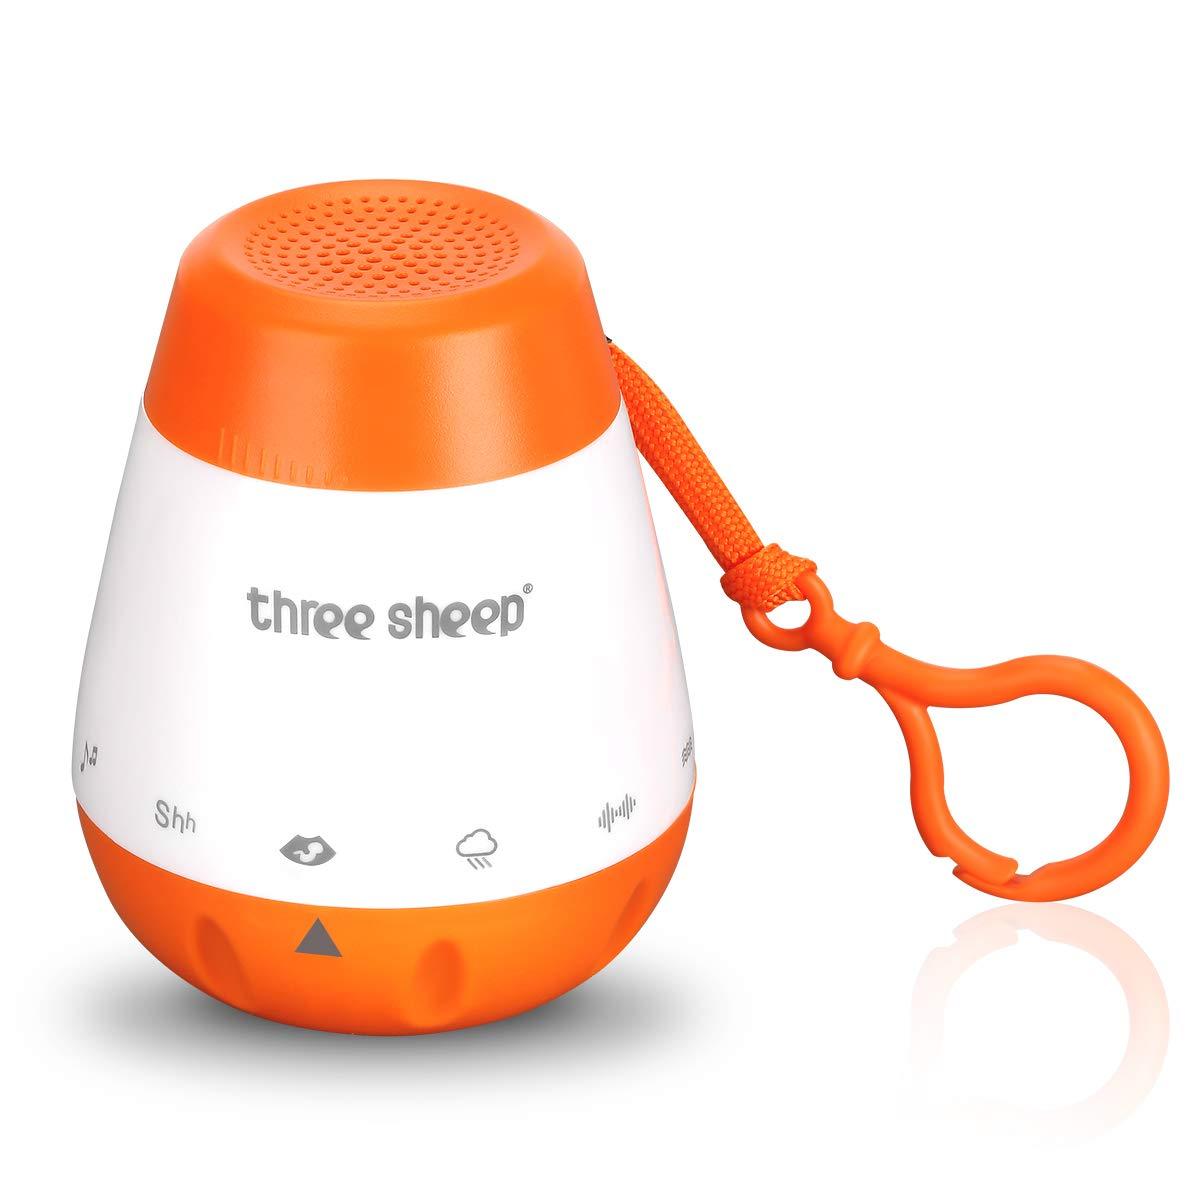 Baby Soother Sound Machine, Portable White Noise Machine with 6 Relaxing and Soothing Sound, 30 Minutes Auto-Off and Sound Sensor Function, Easily Attach to Strollers, Cribs & Car Seats, Rechargeable